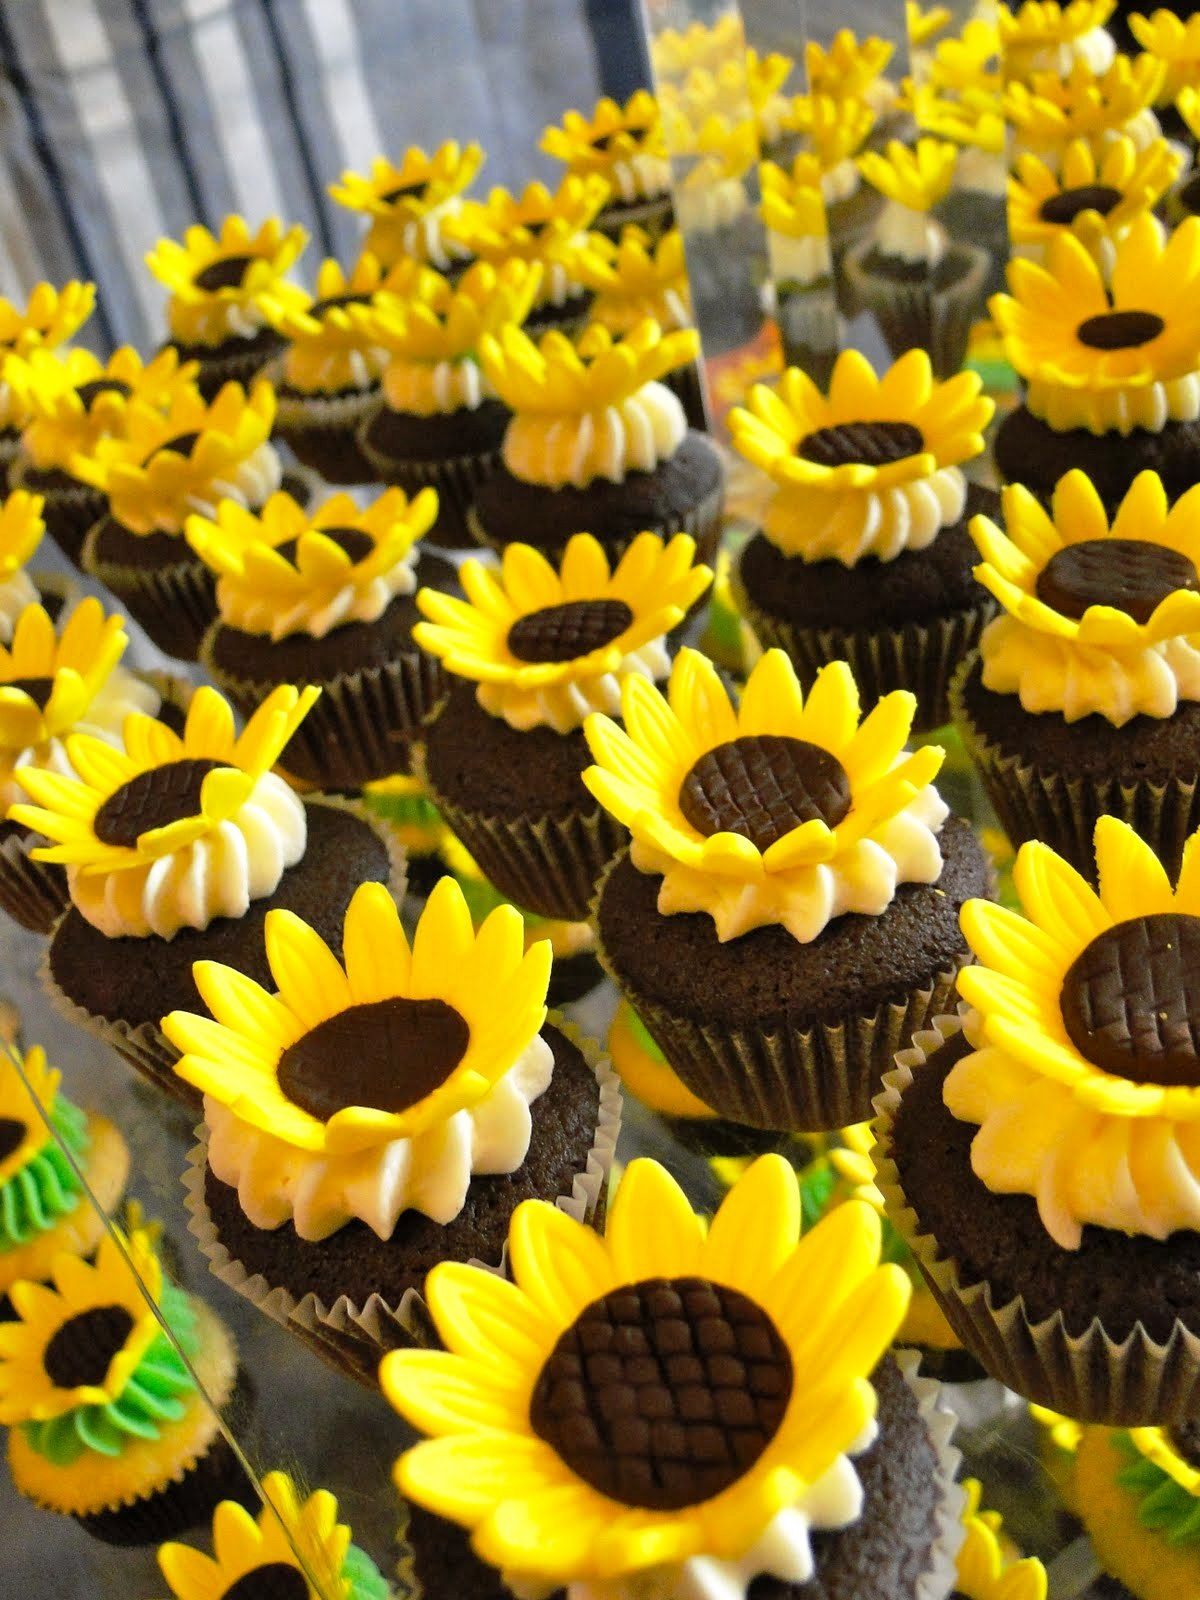 Sunflower Wedding Cup Cake Decorating Ideas